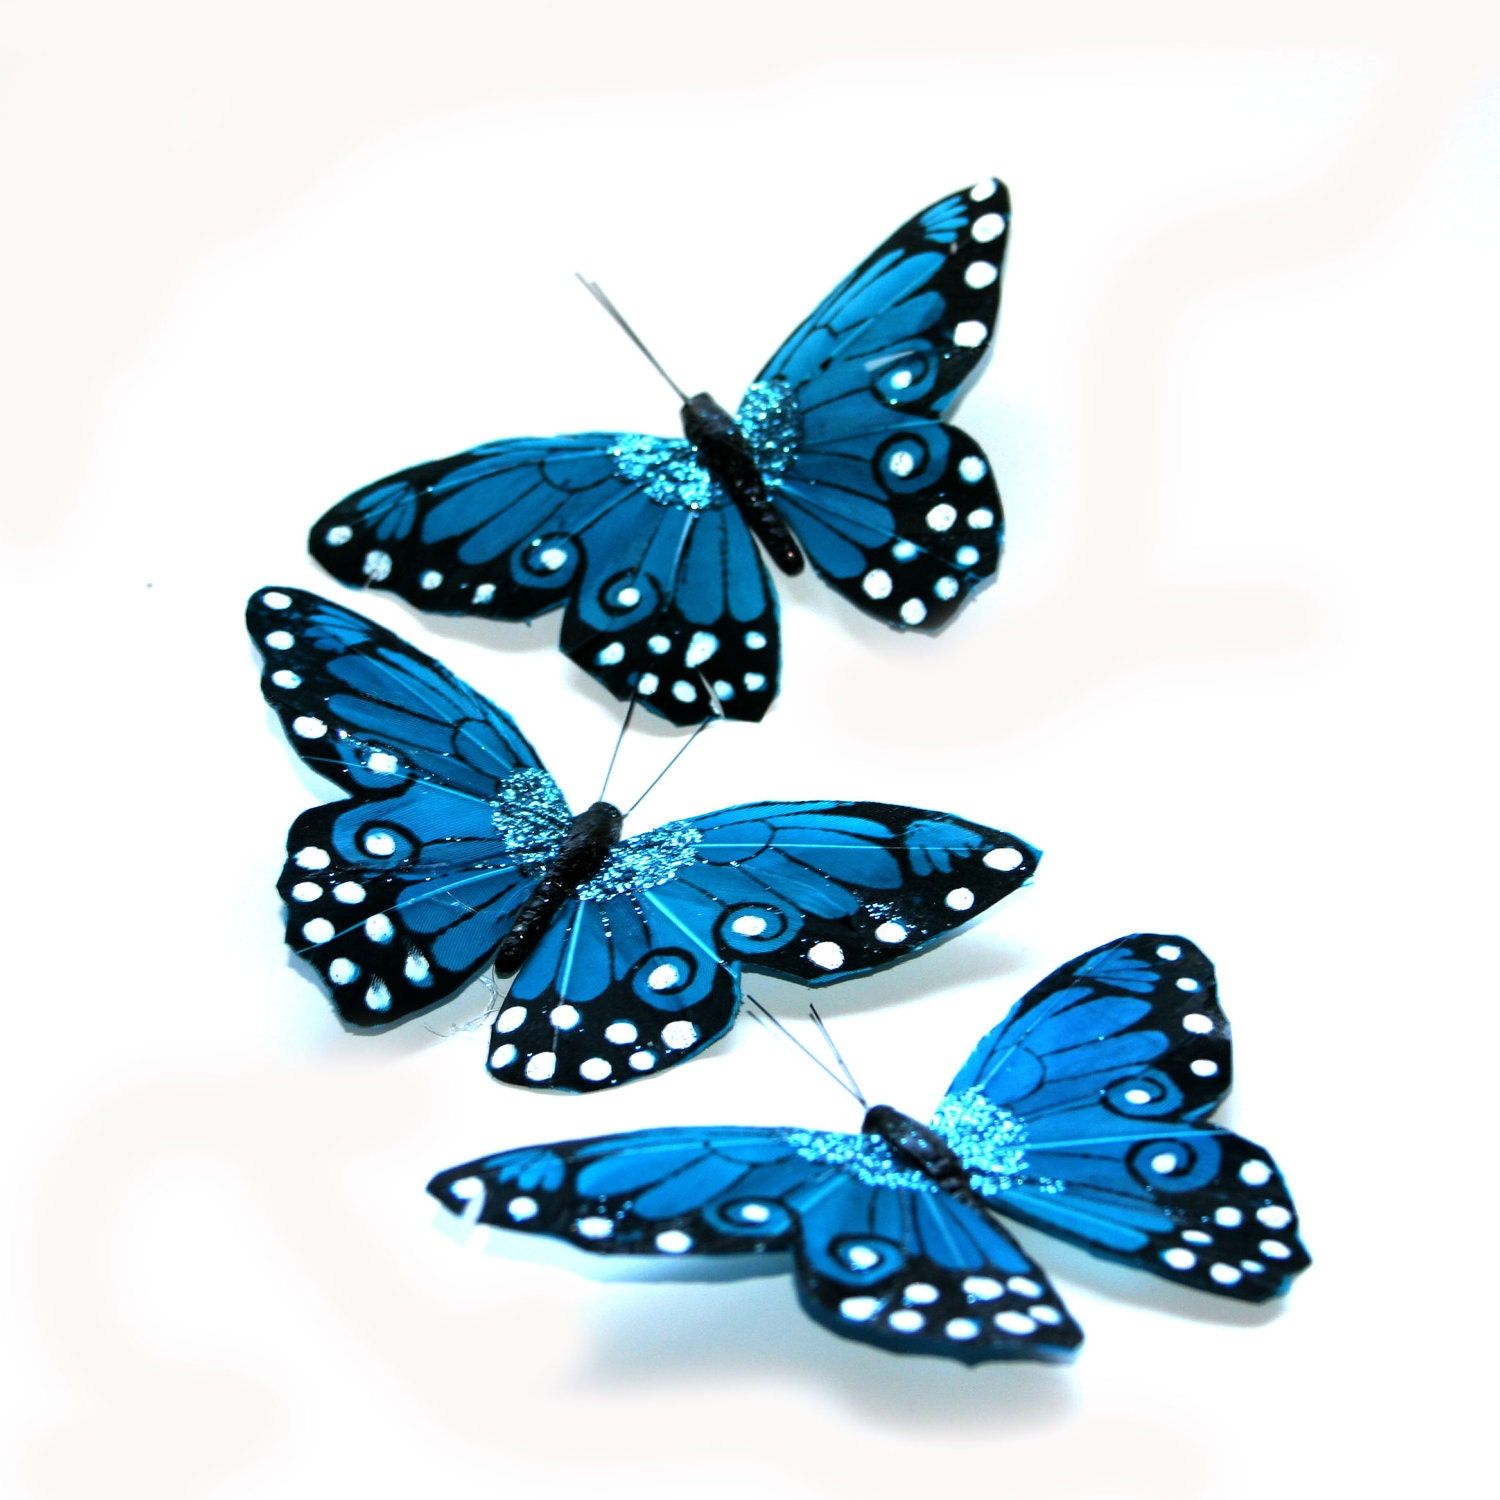 3 Large Turquoise Viceroy Butterflies For Hair Pins Favors